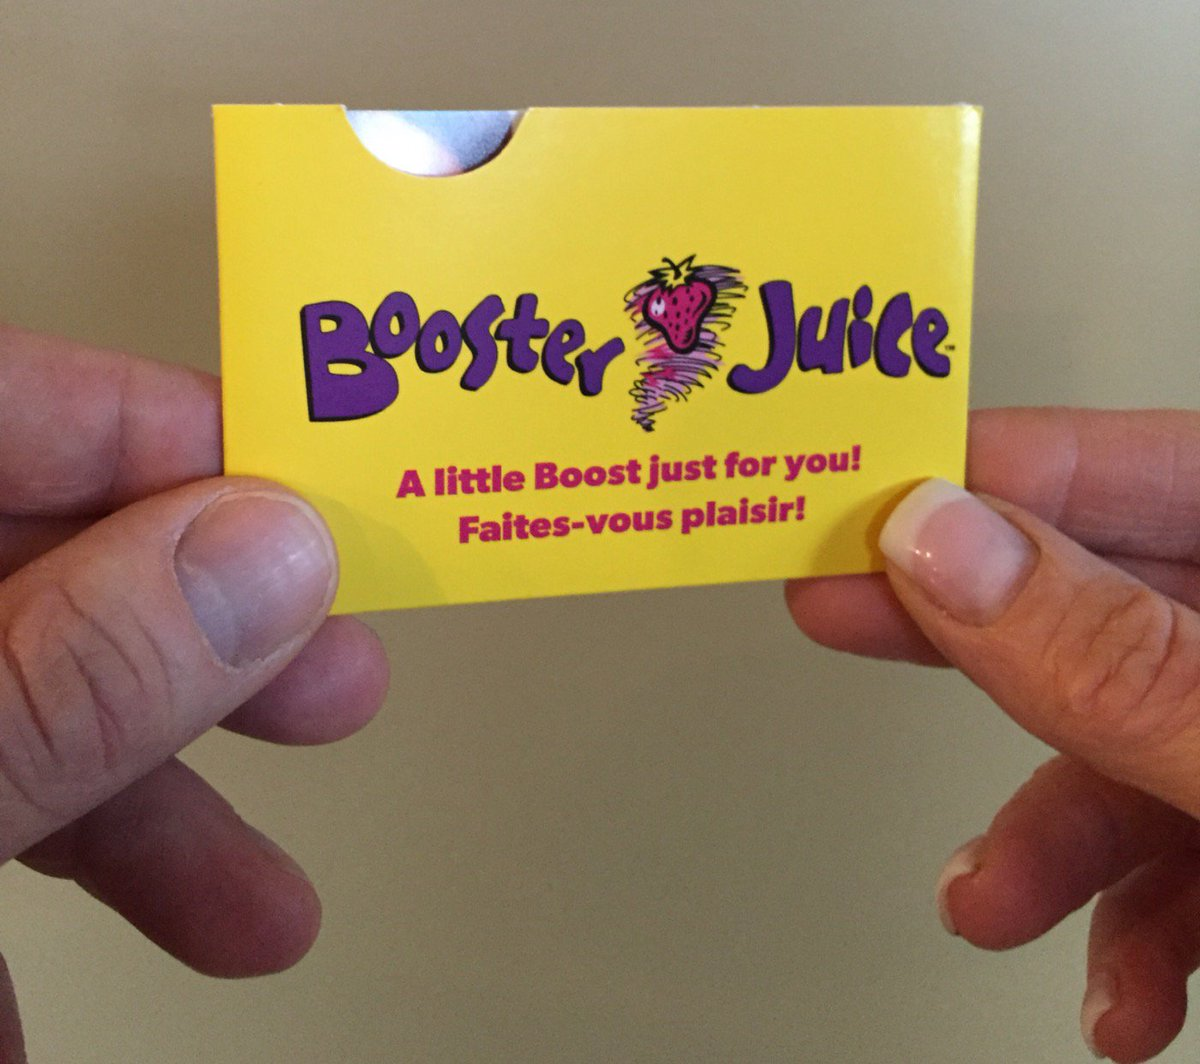 We want you to have this!  Retweet 4 a chance 2 win a $100 GC #justforyou https://t.co/qqRVf3eqkr